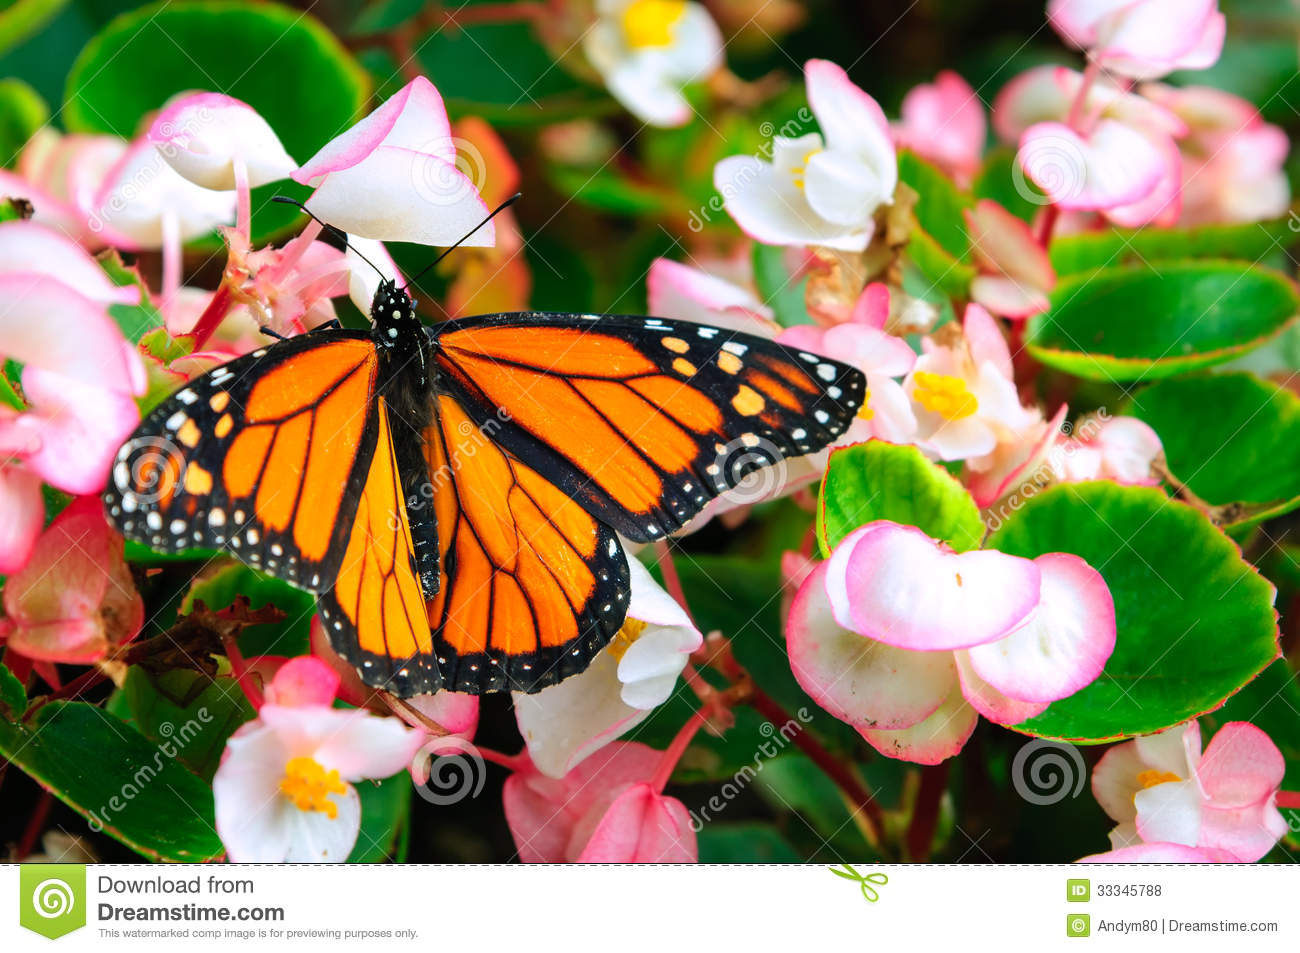 Monarch butterfly sitting on the flower